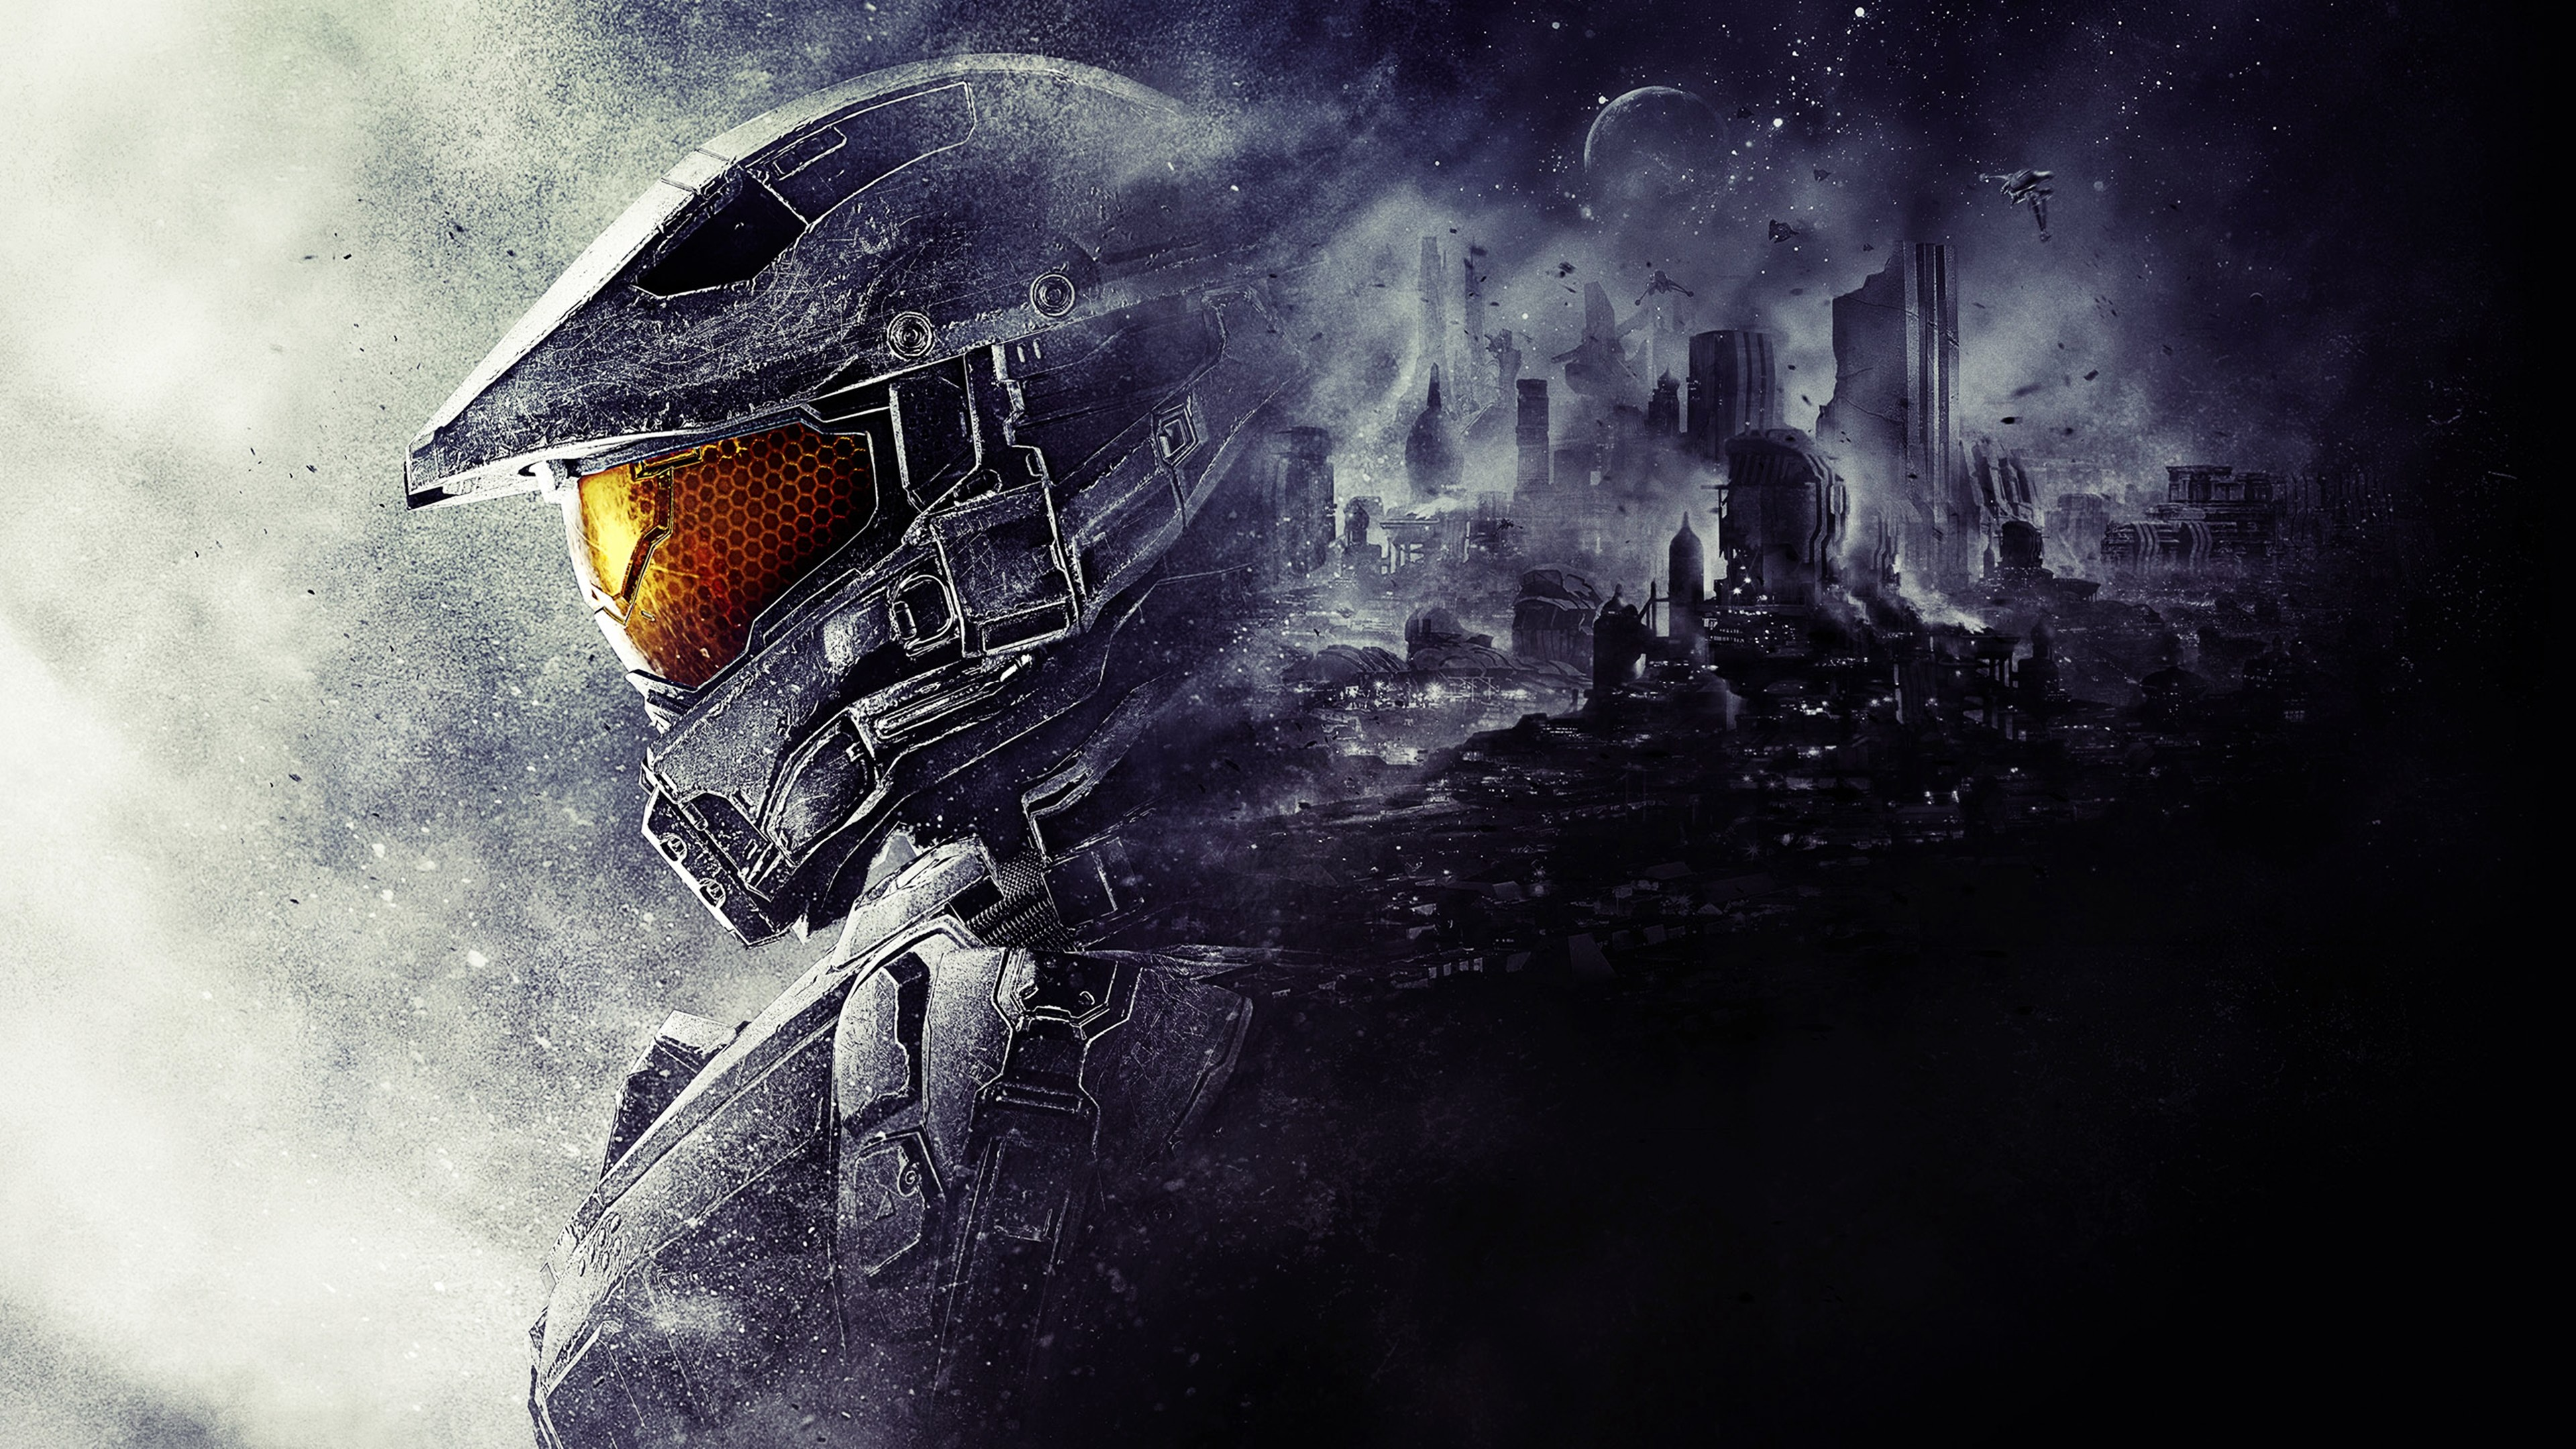 3840x2160 Video Game - Halo 5: Guardians Master Chief Wallpaper